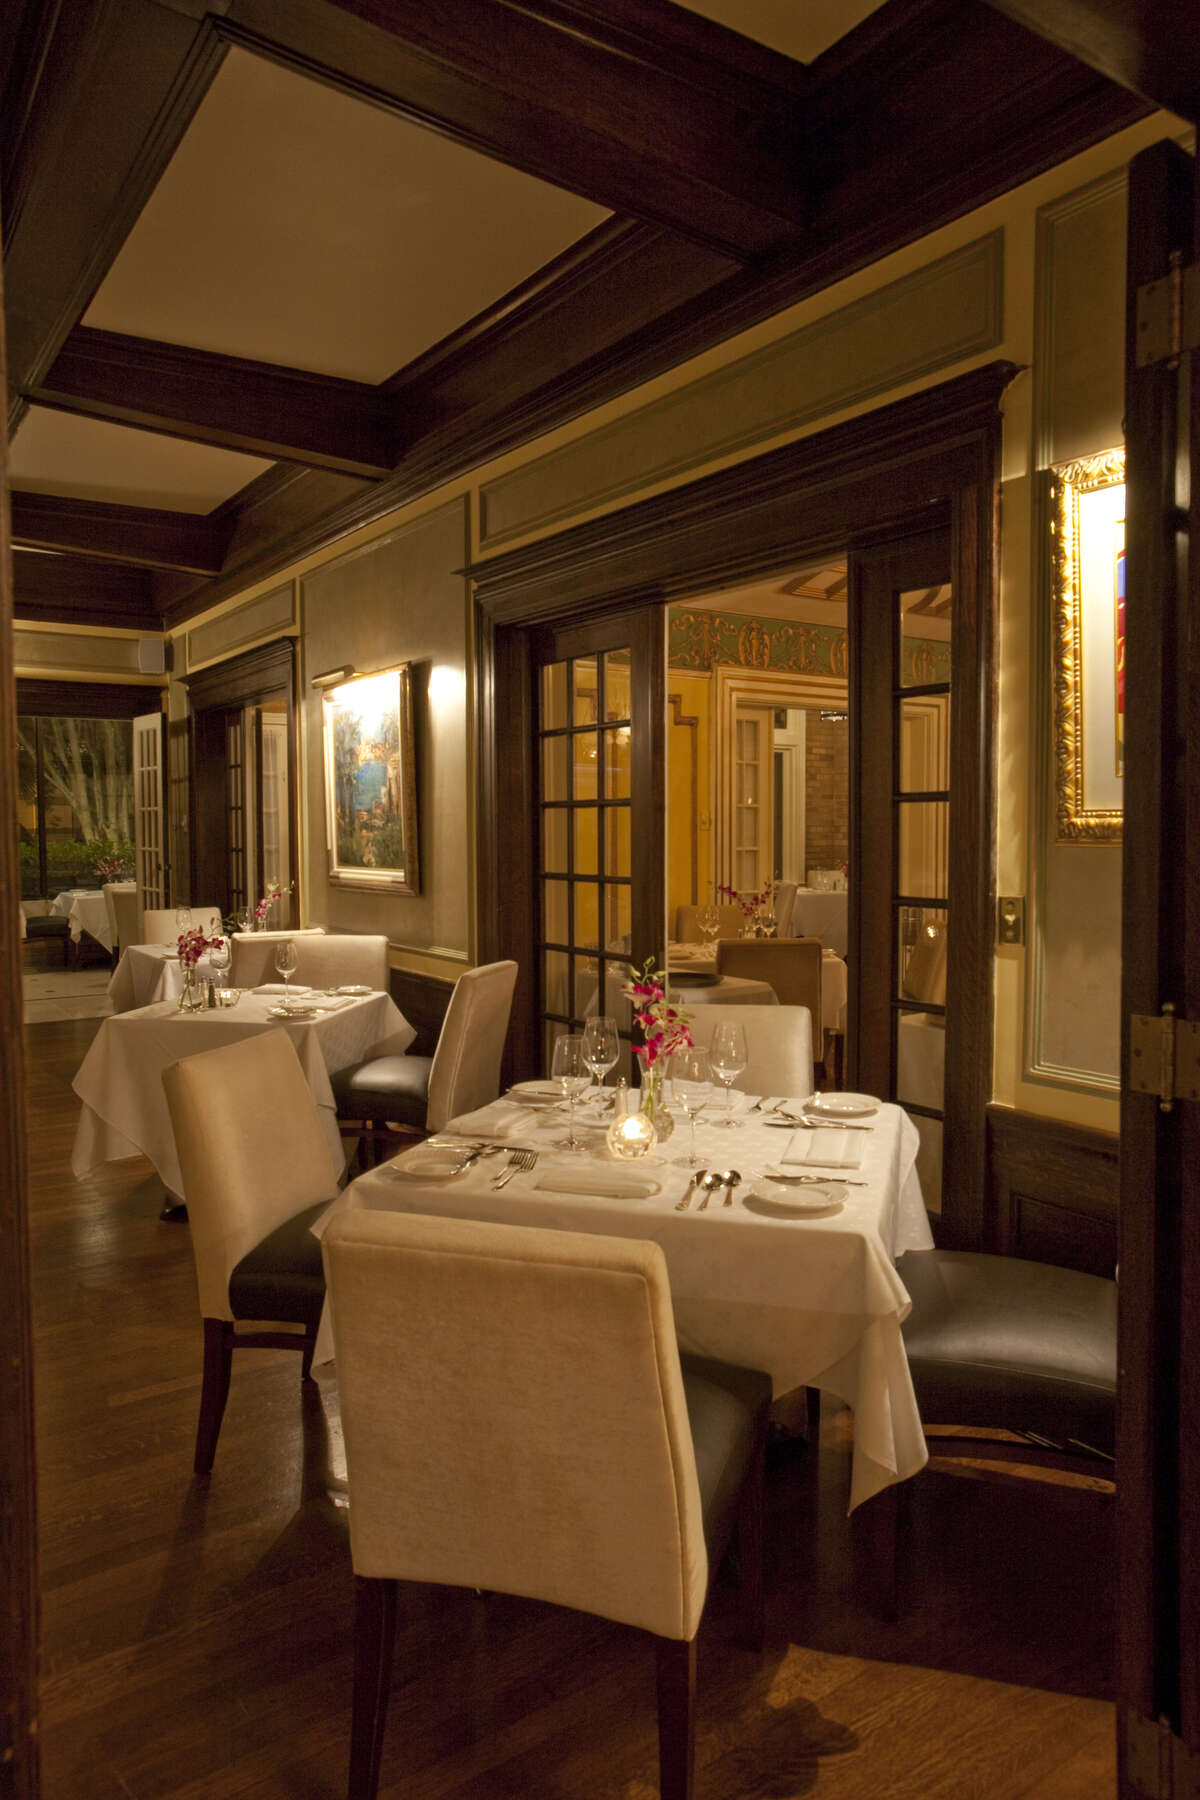 Restaurant Cinq at La Colombe d'Or Hotel 3410 Montrose713-524-7999lacolombedor.comOne of the dining rooms of Restaurant Cinq at night. The fine dining restaurant is in La Colombe d'Or Hotel, 3410 Montrose, Houston.